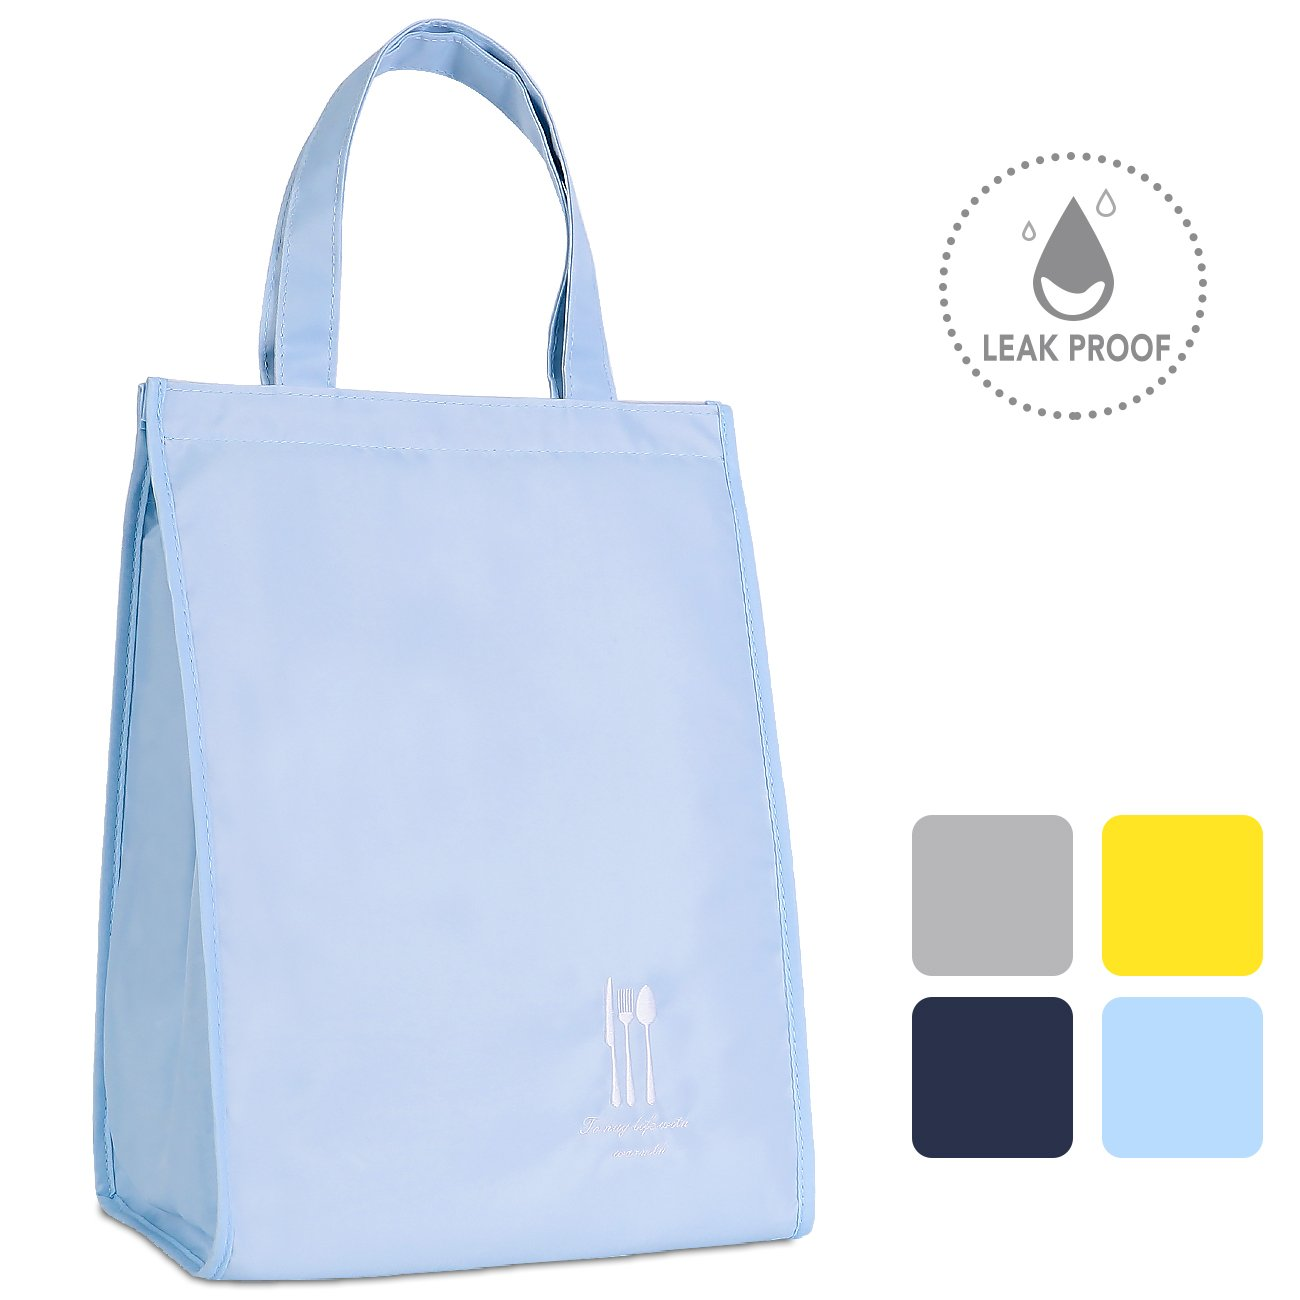 HOMESPON Reusable Lunch Bags, Water Proof Fabric with Insulated Aluminum Foil, Lunch Box for Women, Men, Students, Office, Picnic- Large (Baby Blue)